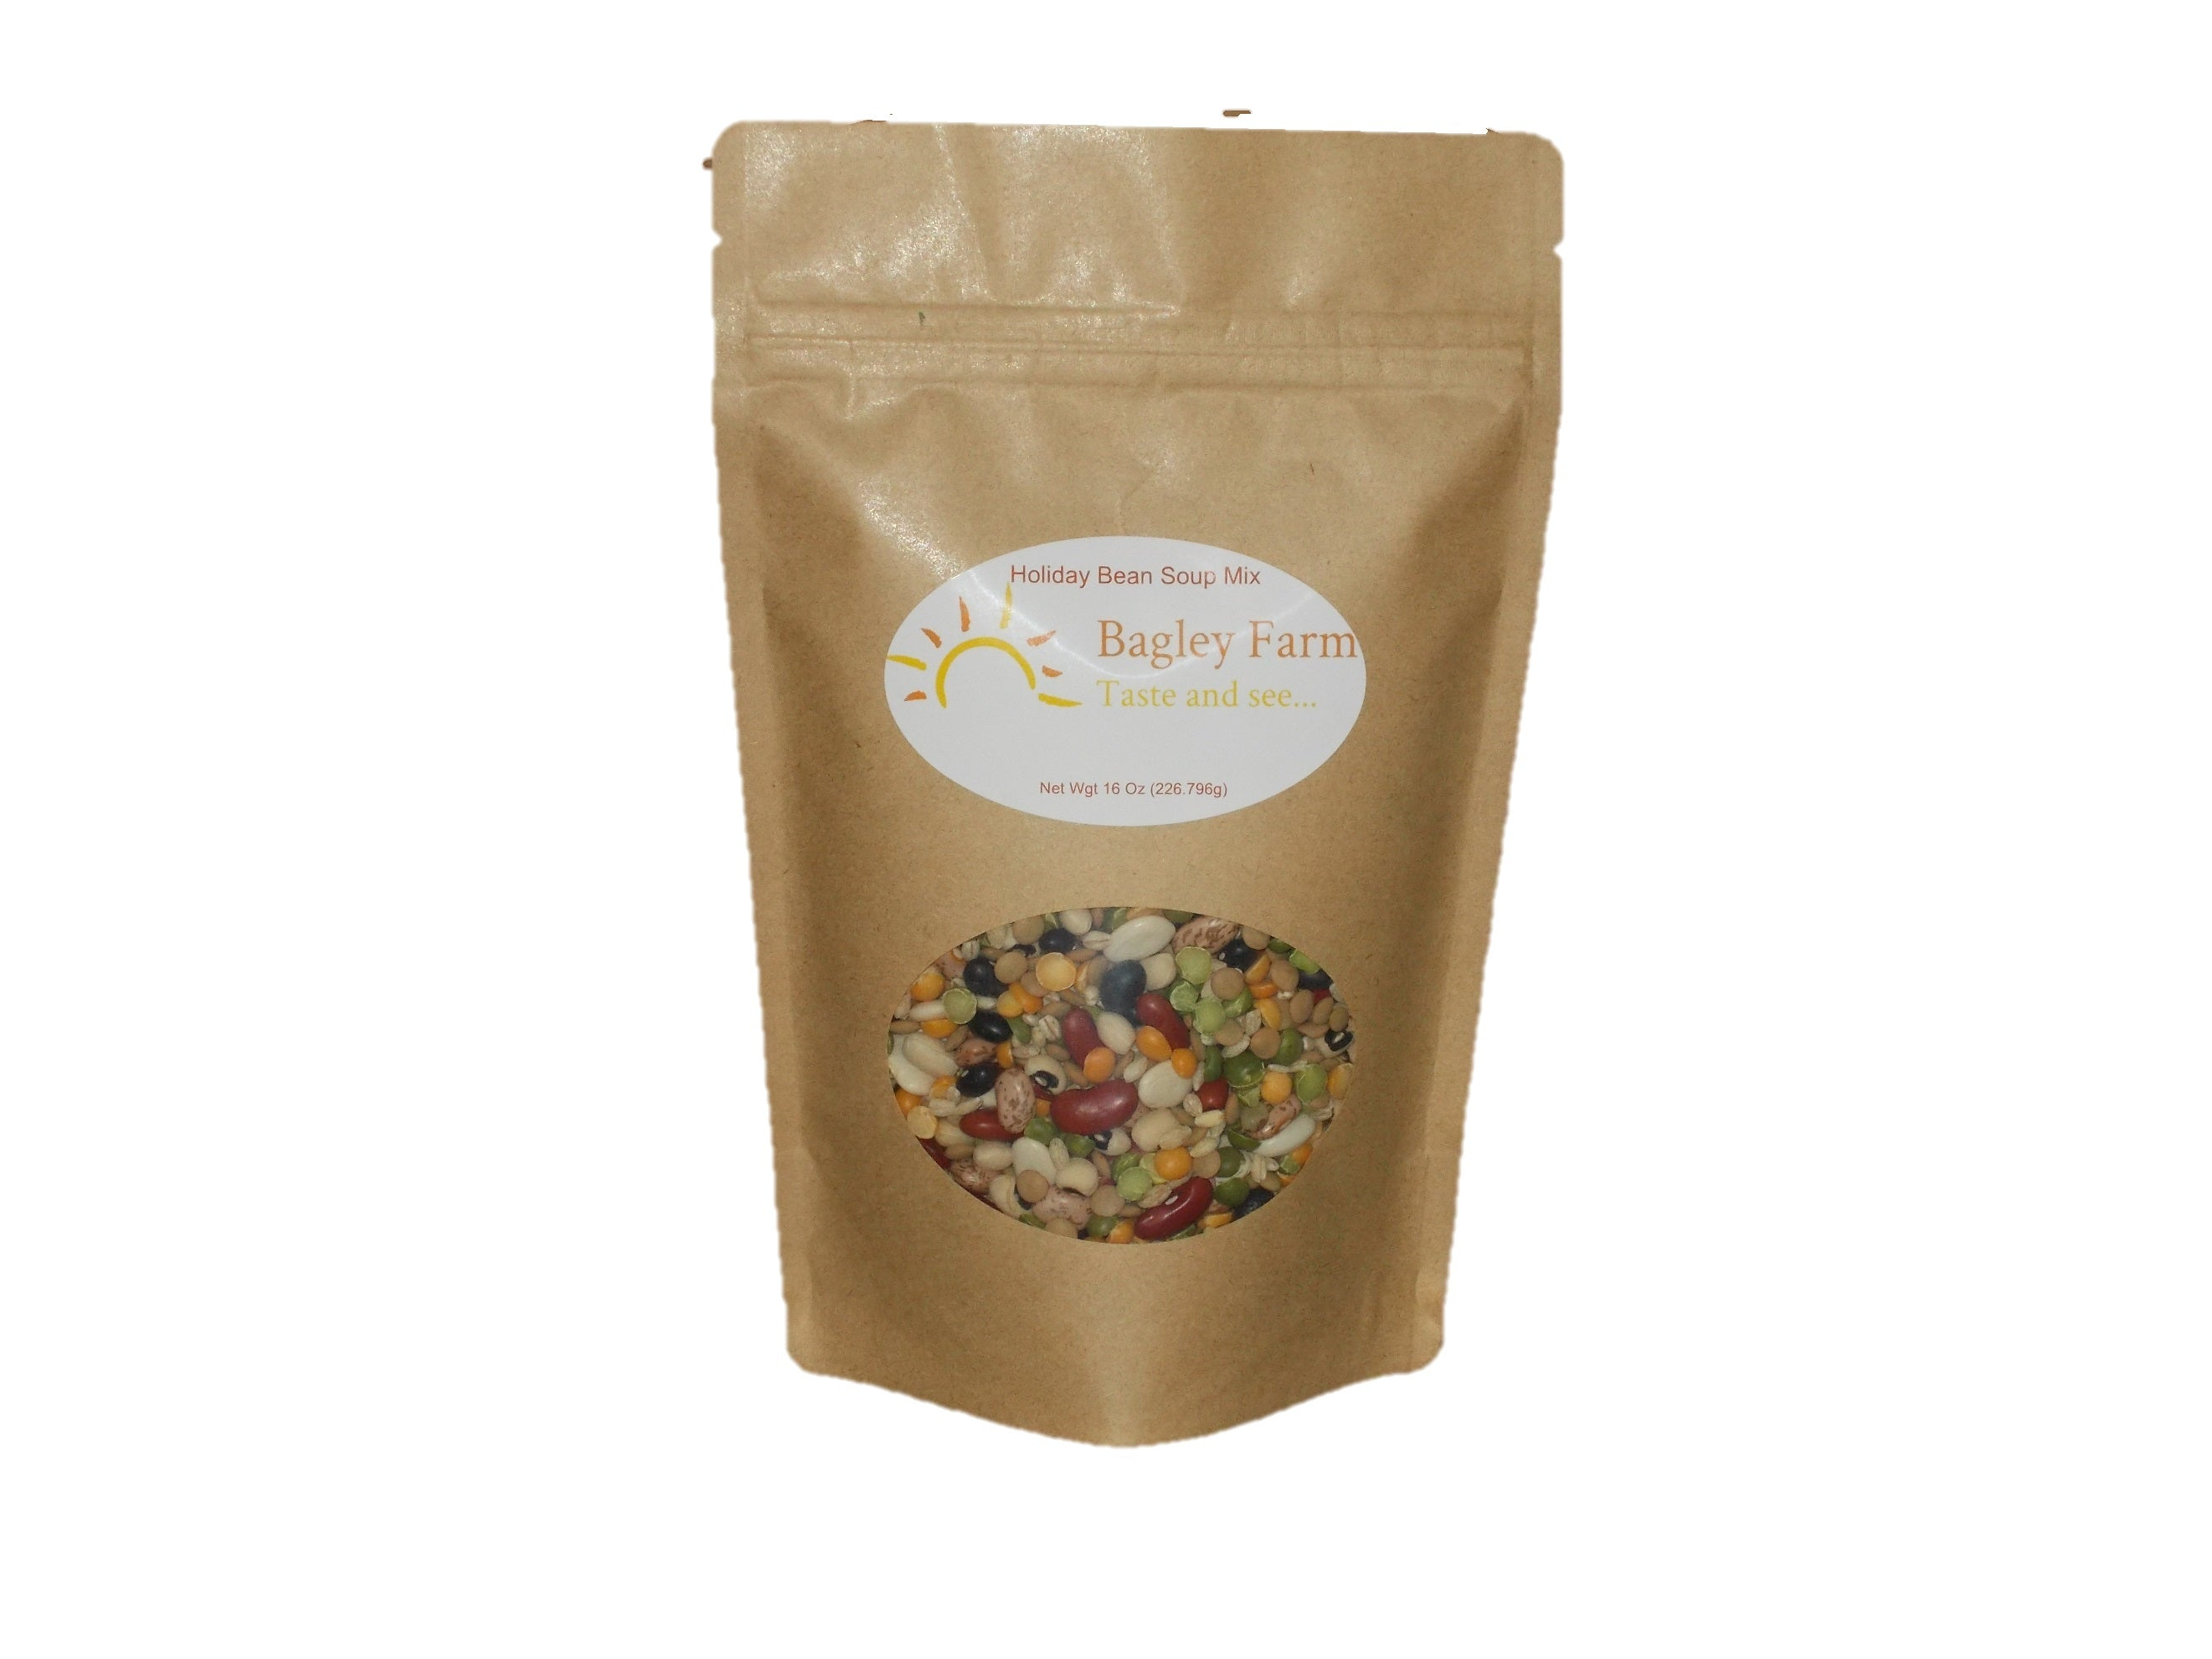 Holiday Bean Soup Mix